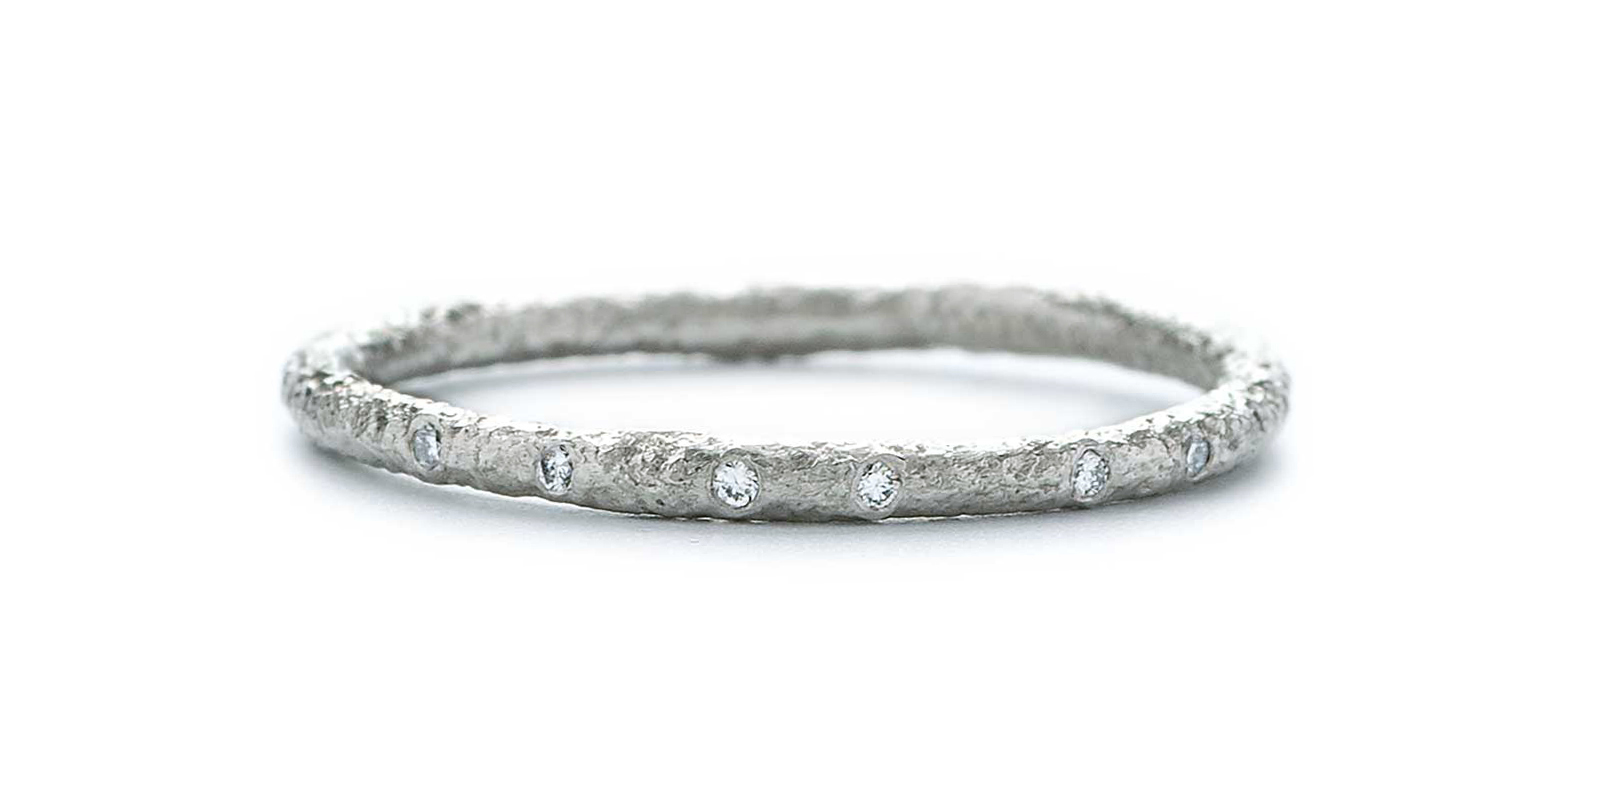 Diamond Scattered Eternity Ring – White Diamond, Platinum 950